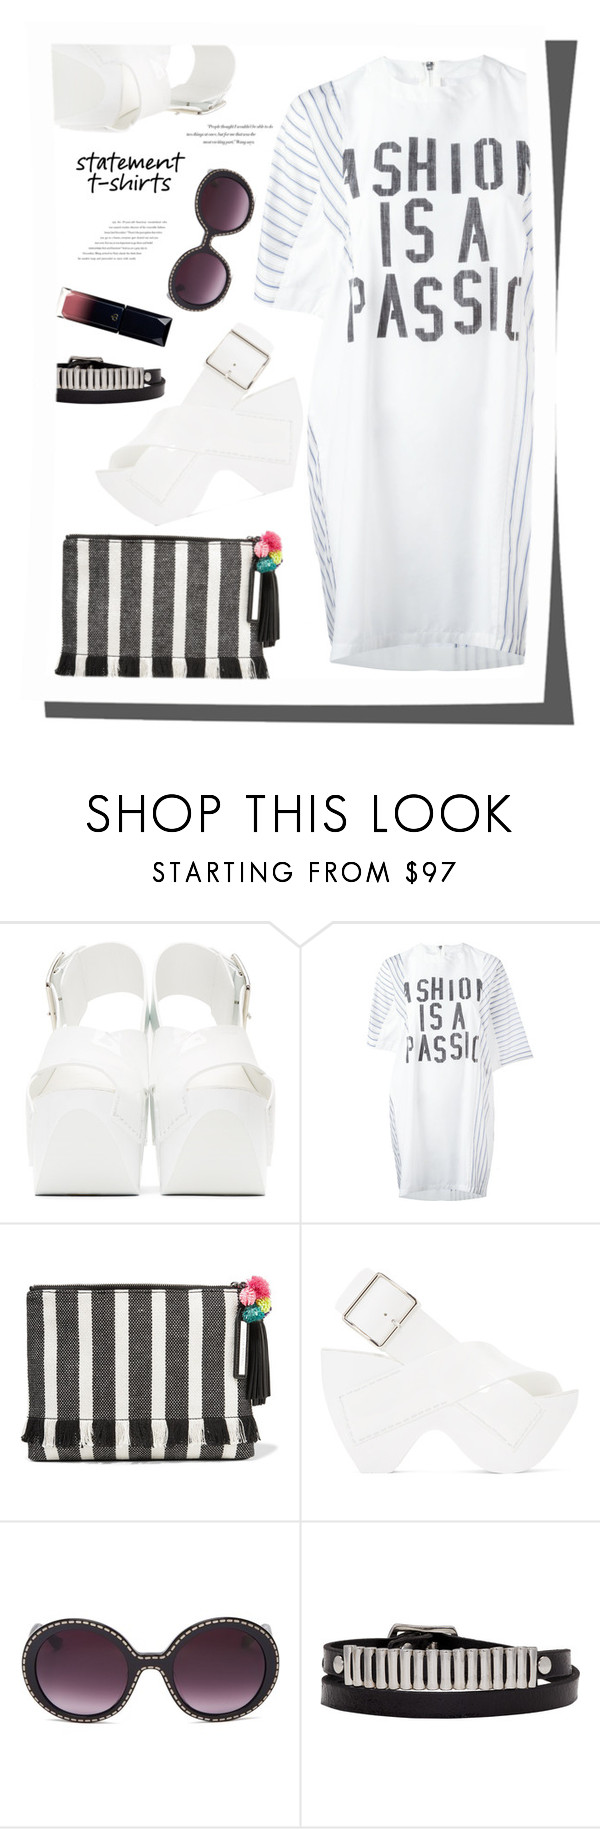 """""""Slogan T-Shirts"""" by joliedy ❤ liked on Polyvore featuring Acne Studios, Sacai, Loeffler Randall, Moschino, Balenciaga, Lacoste and McQ by Alexander McQueen"""